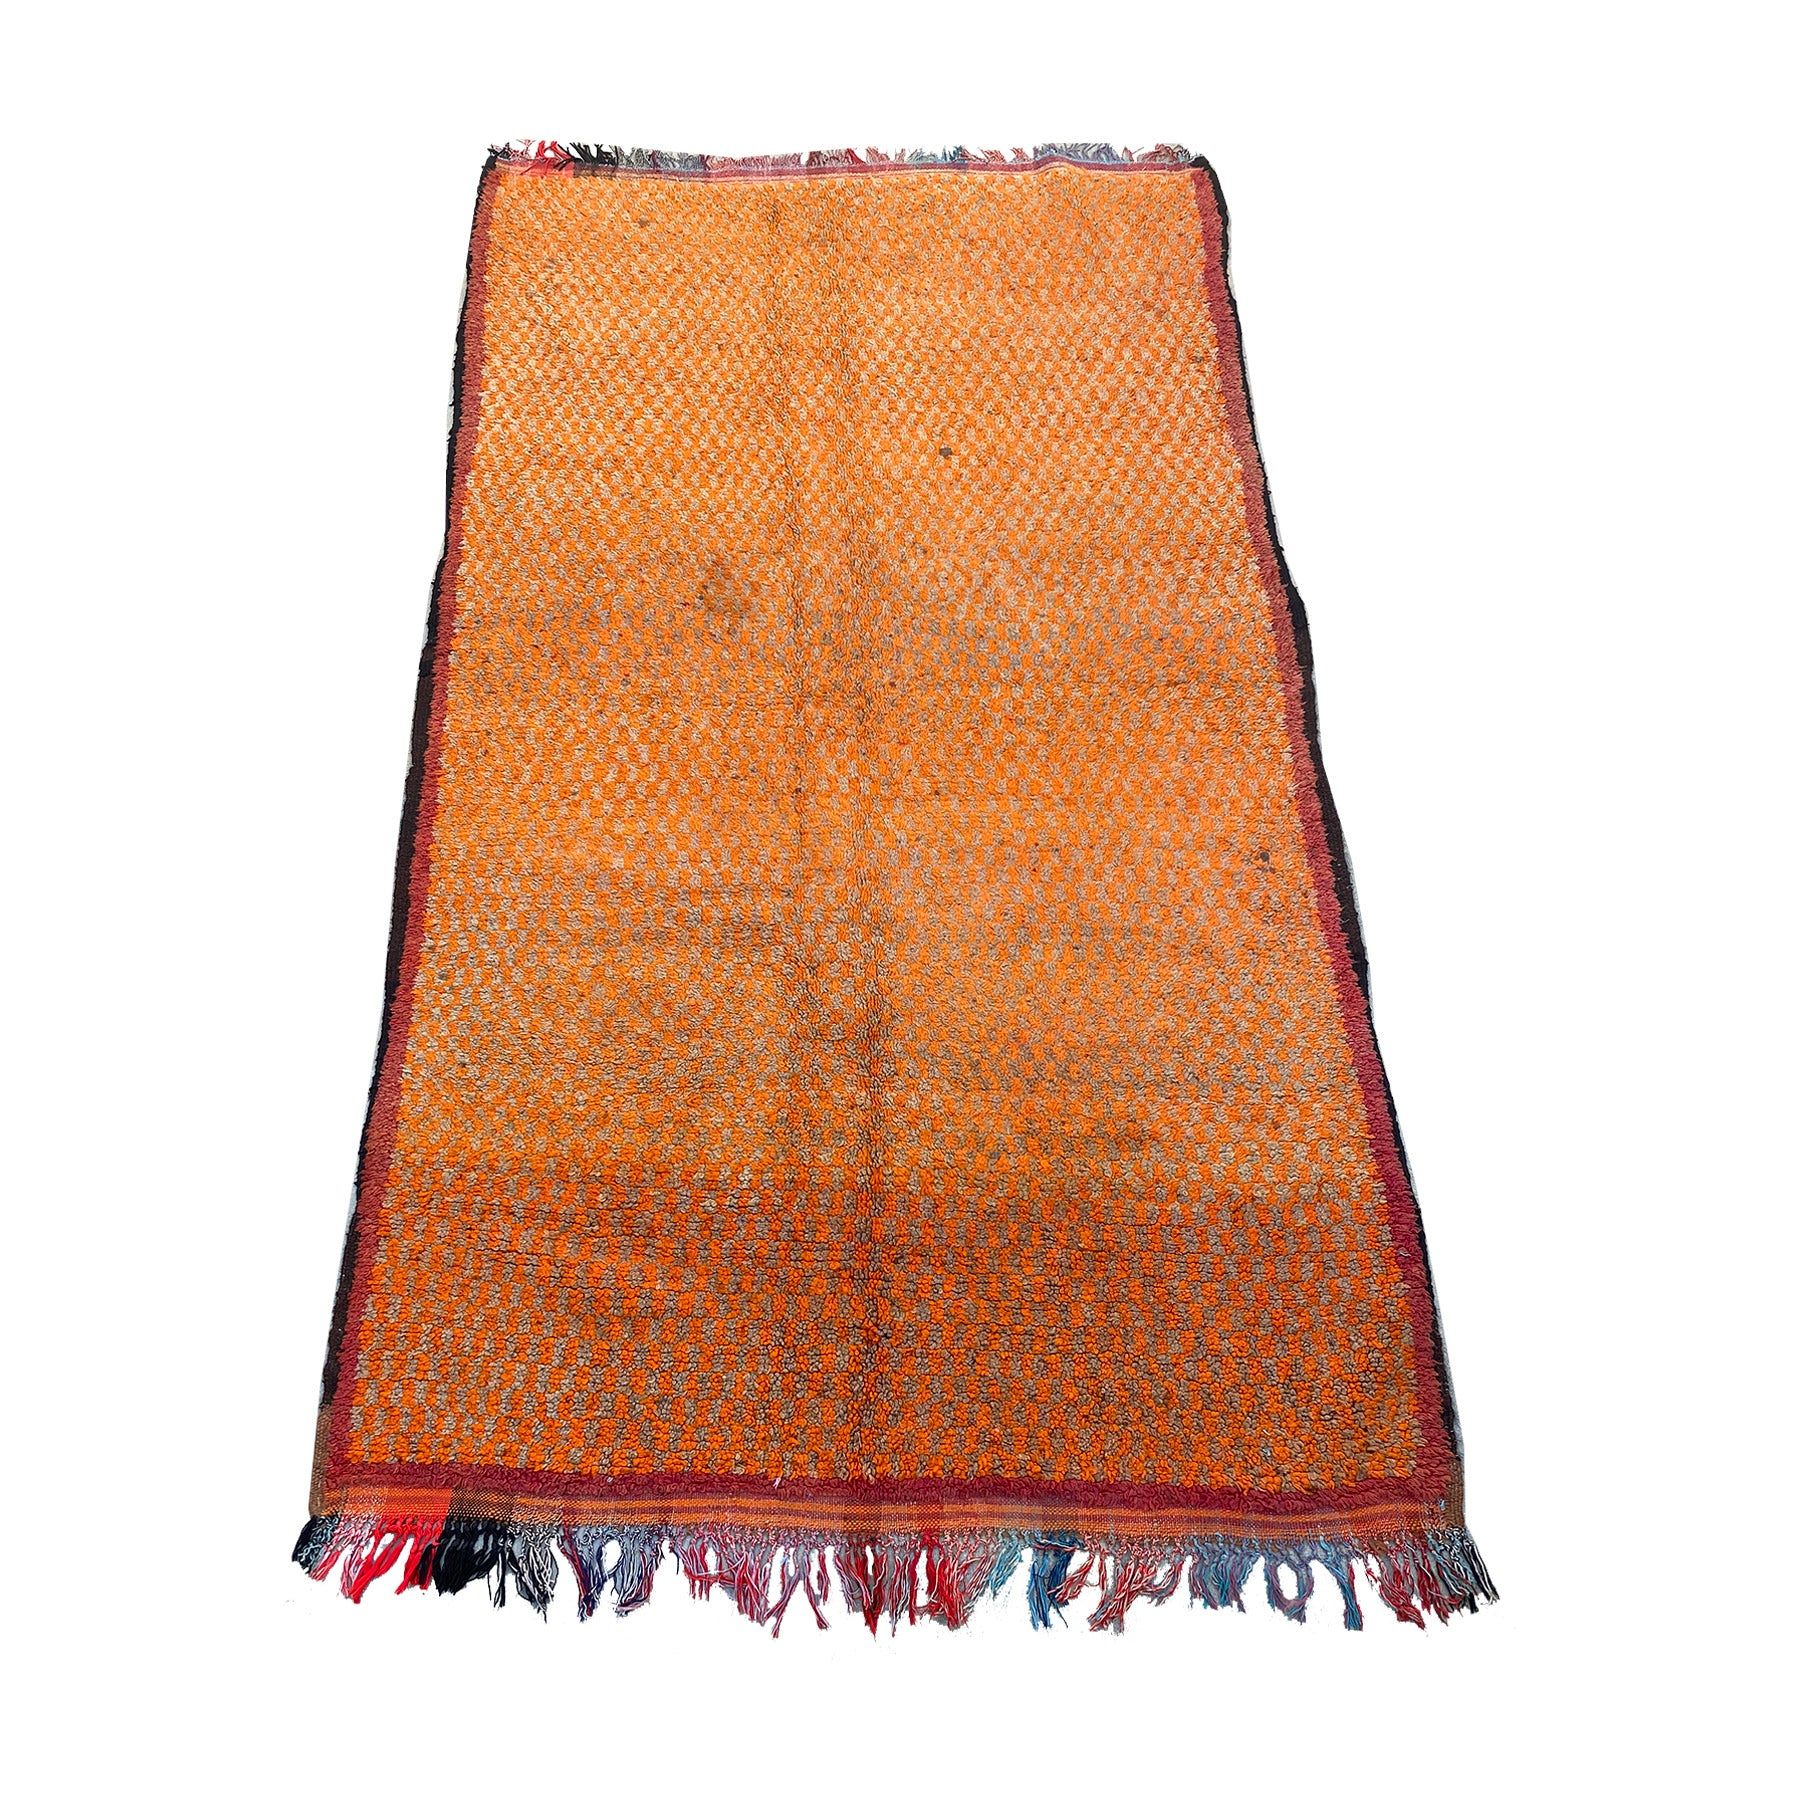 Vintage orange Moroccan entryway rug with checkerboard print - Kantara | Moroccan Rug